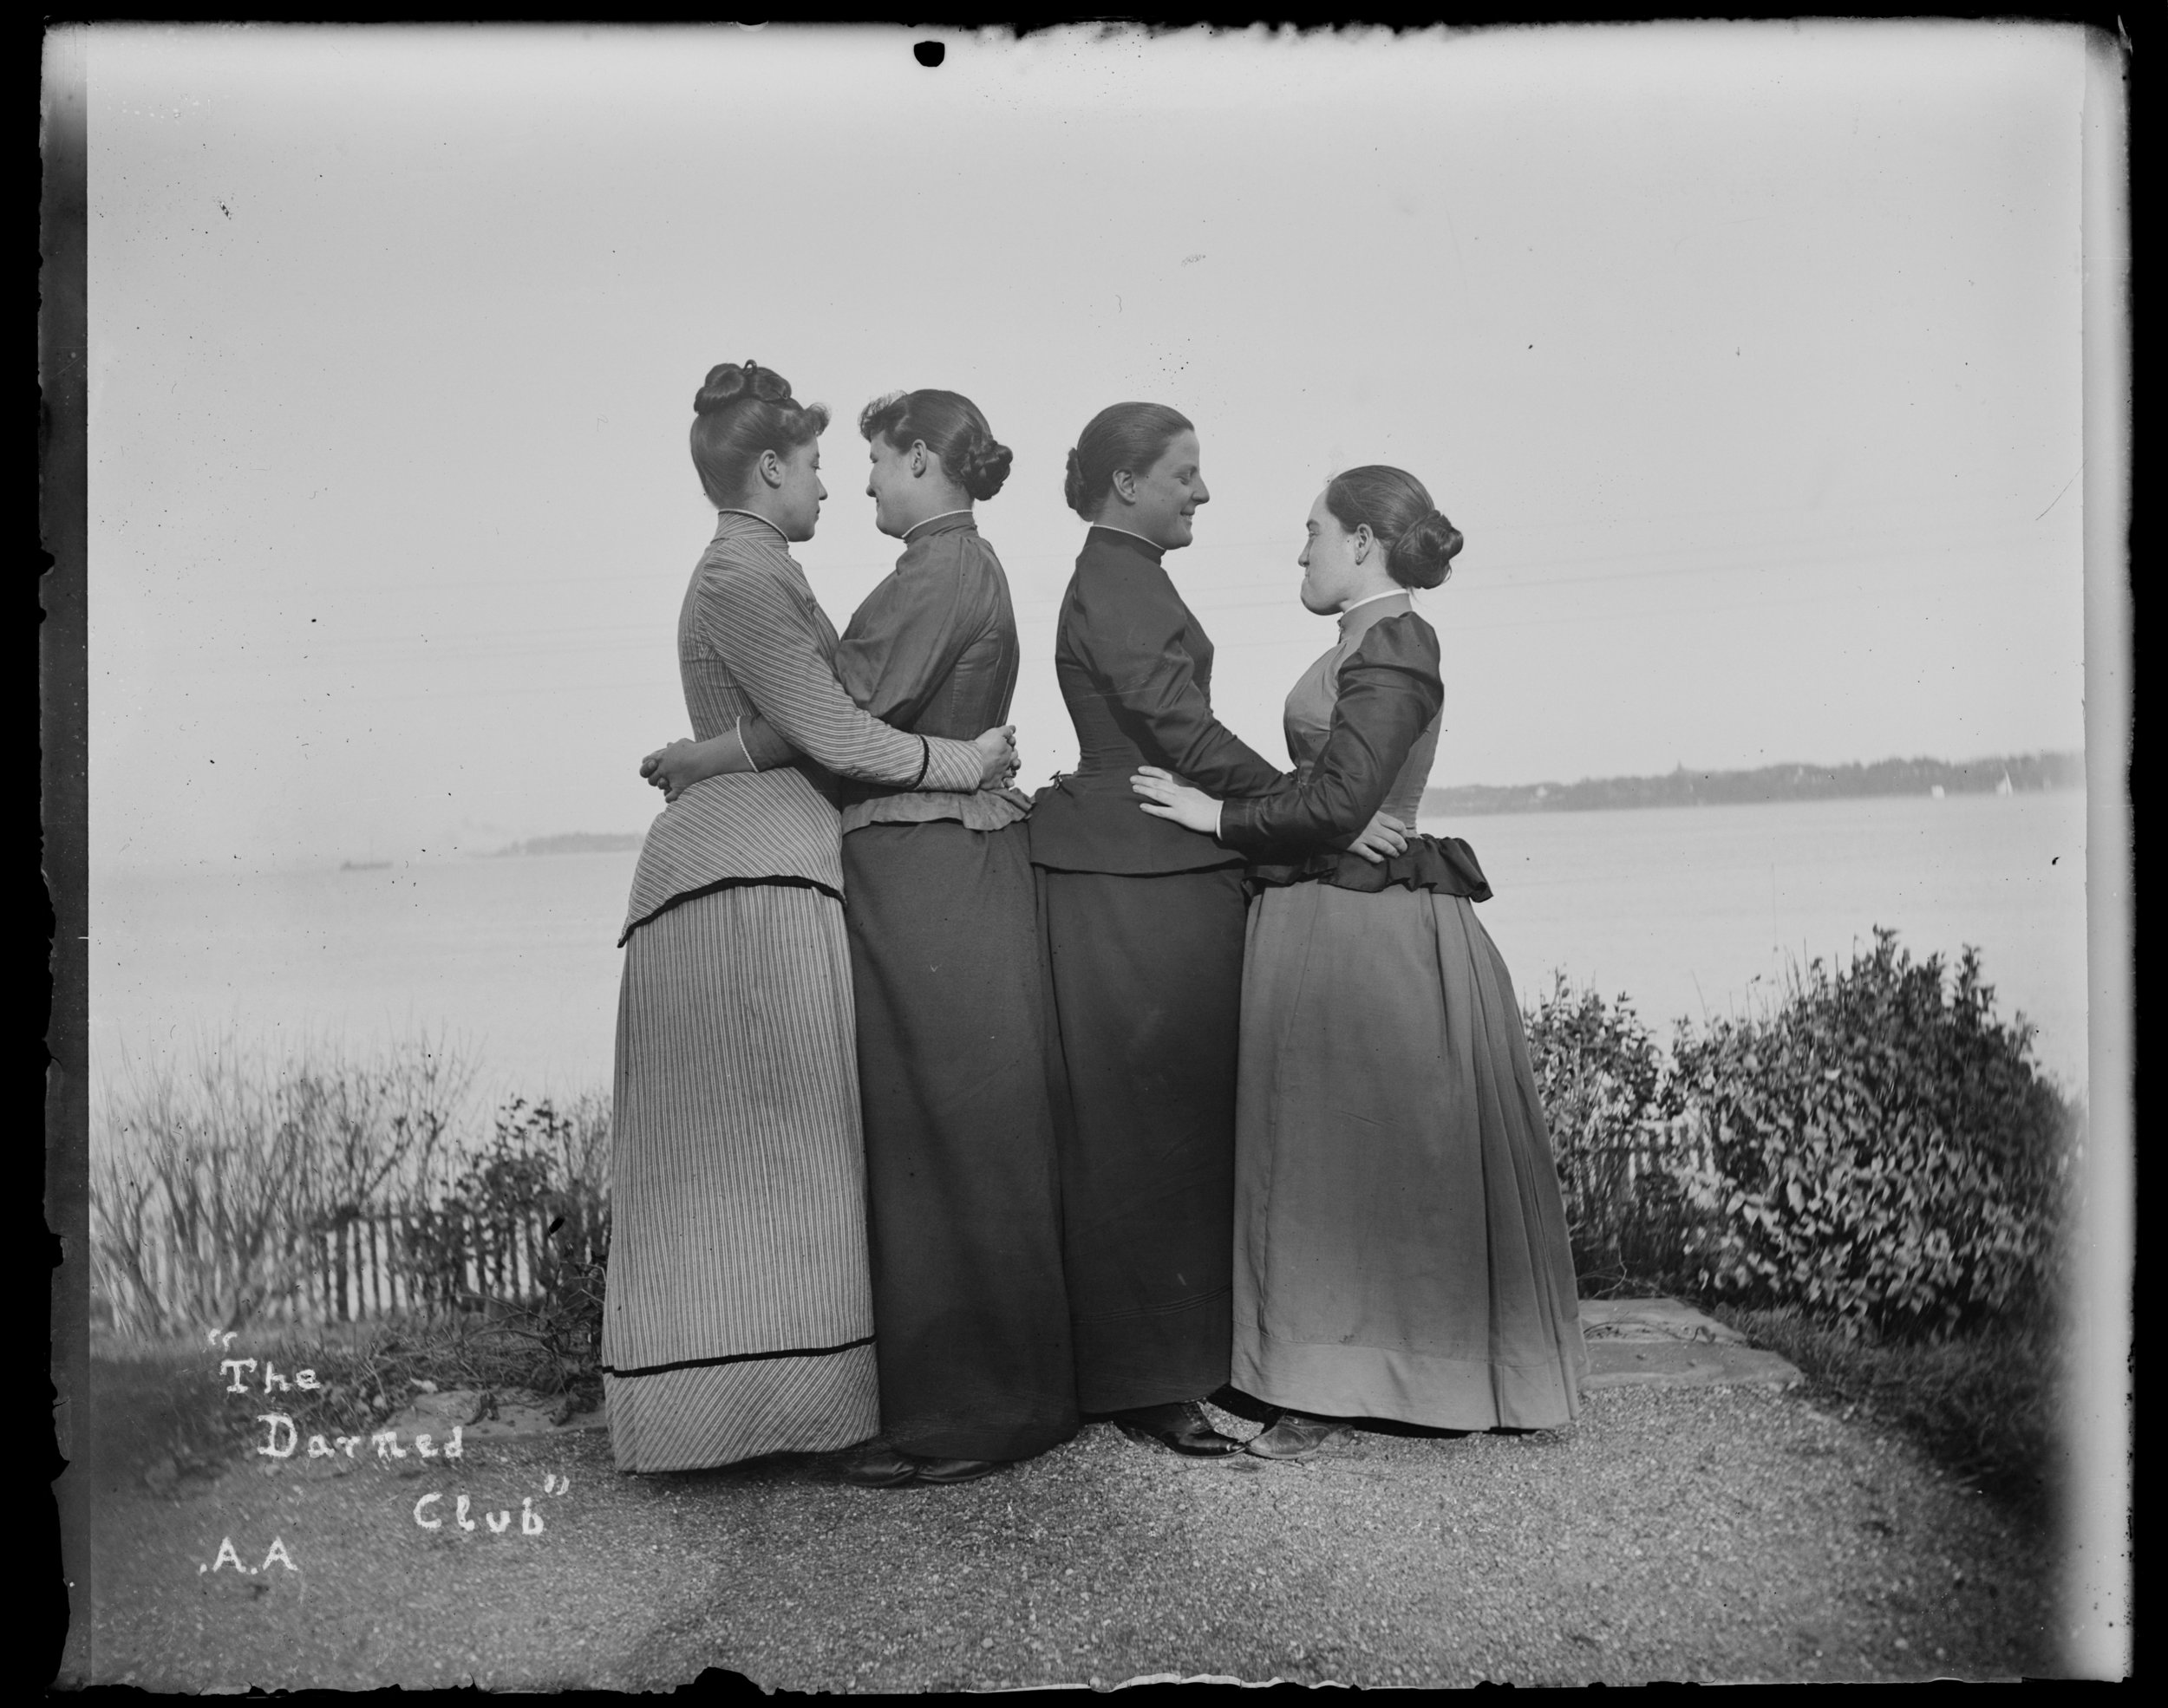 """The Darned Club,"" Staten Island, October 29, 1891. From left to right: Alice Austen, Trude Eccleston, Julia (Marsh) Lord, and Sue Ripley"